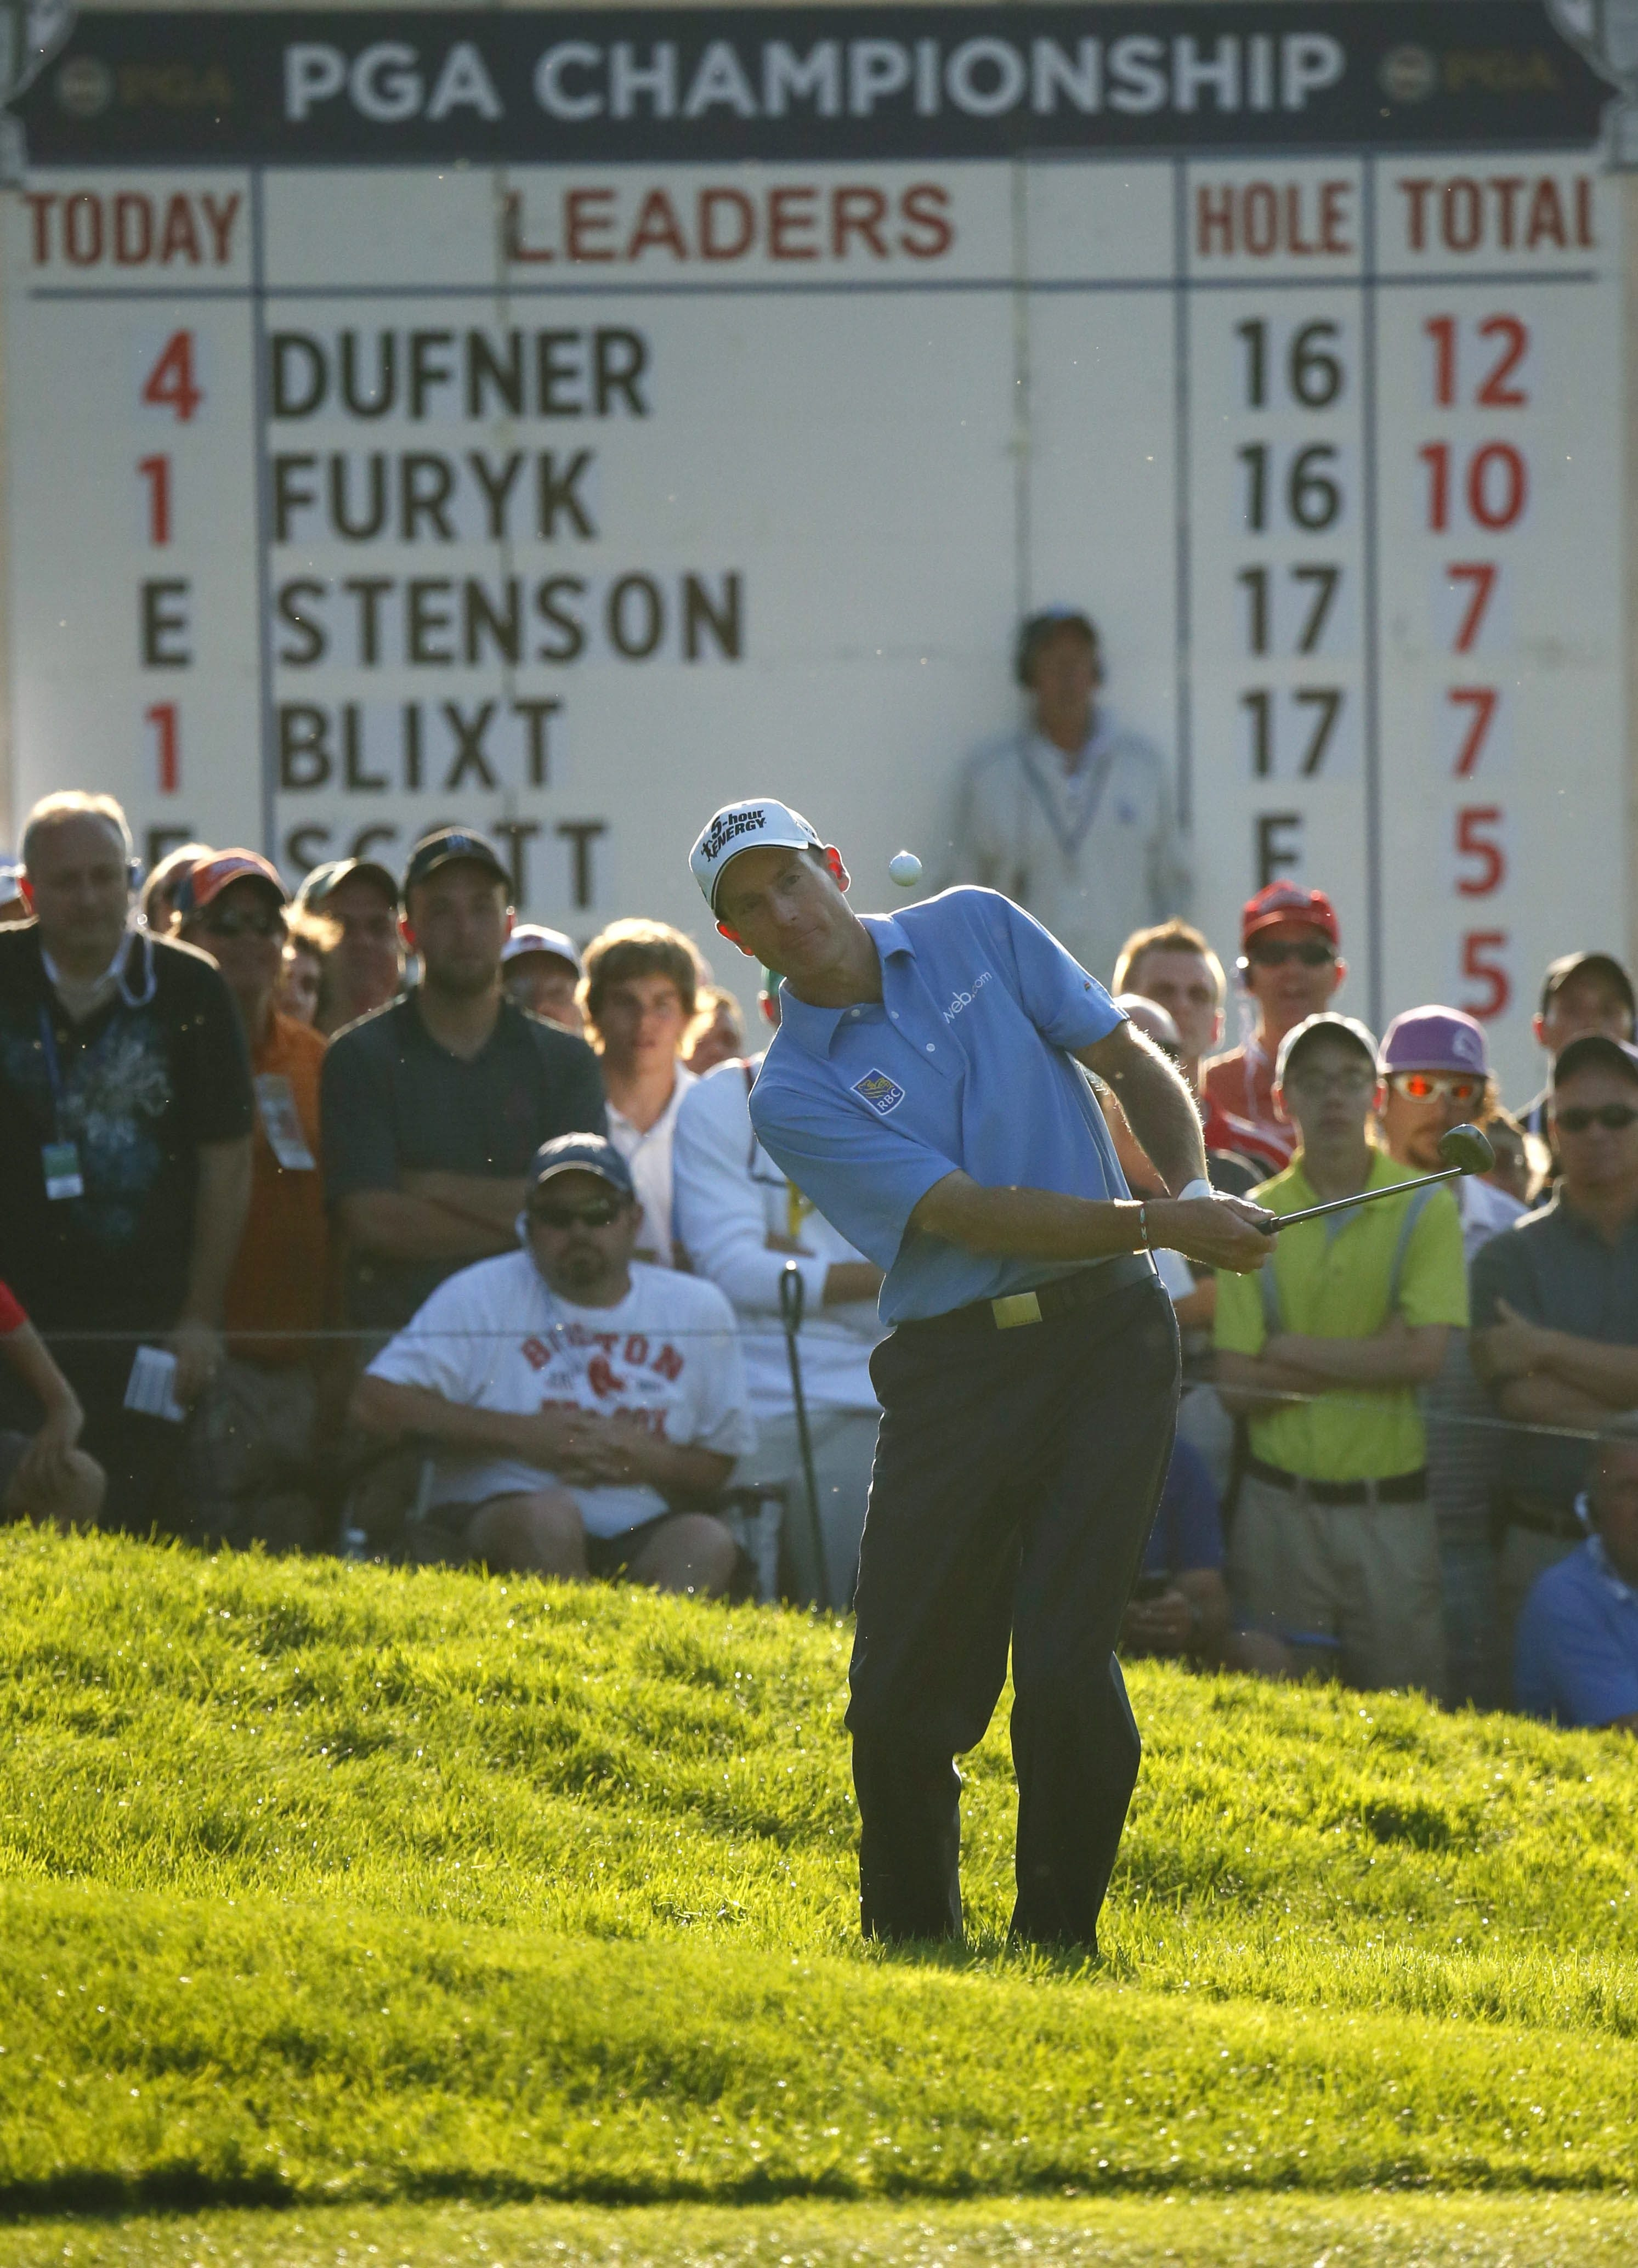 Jim Furyk couldn't make up any ground once he fell out of the lead during the final round.